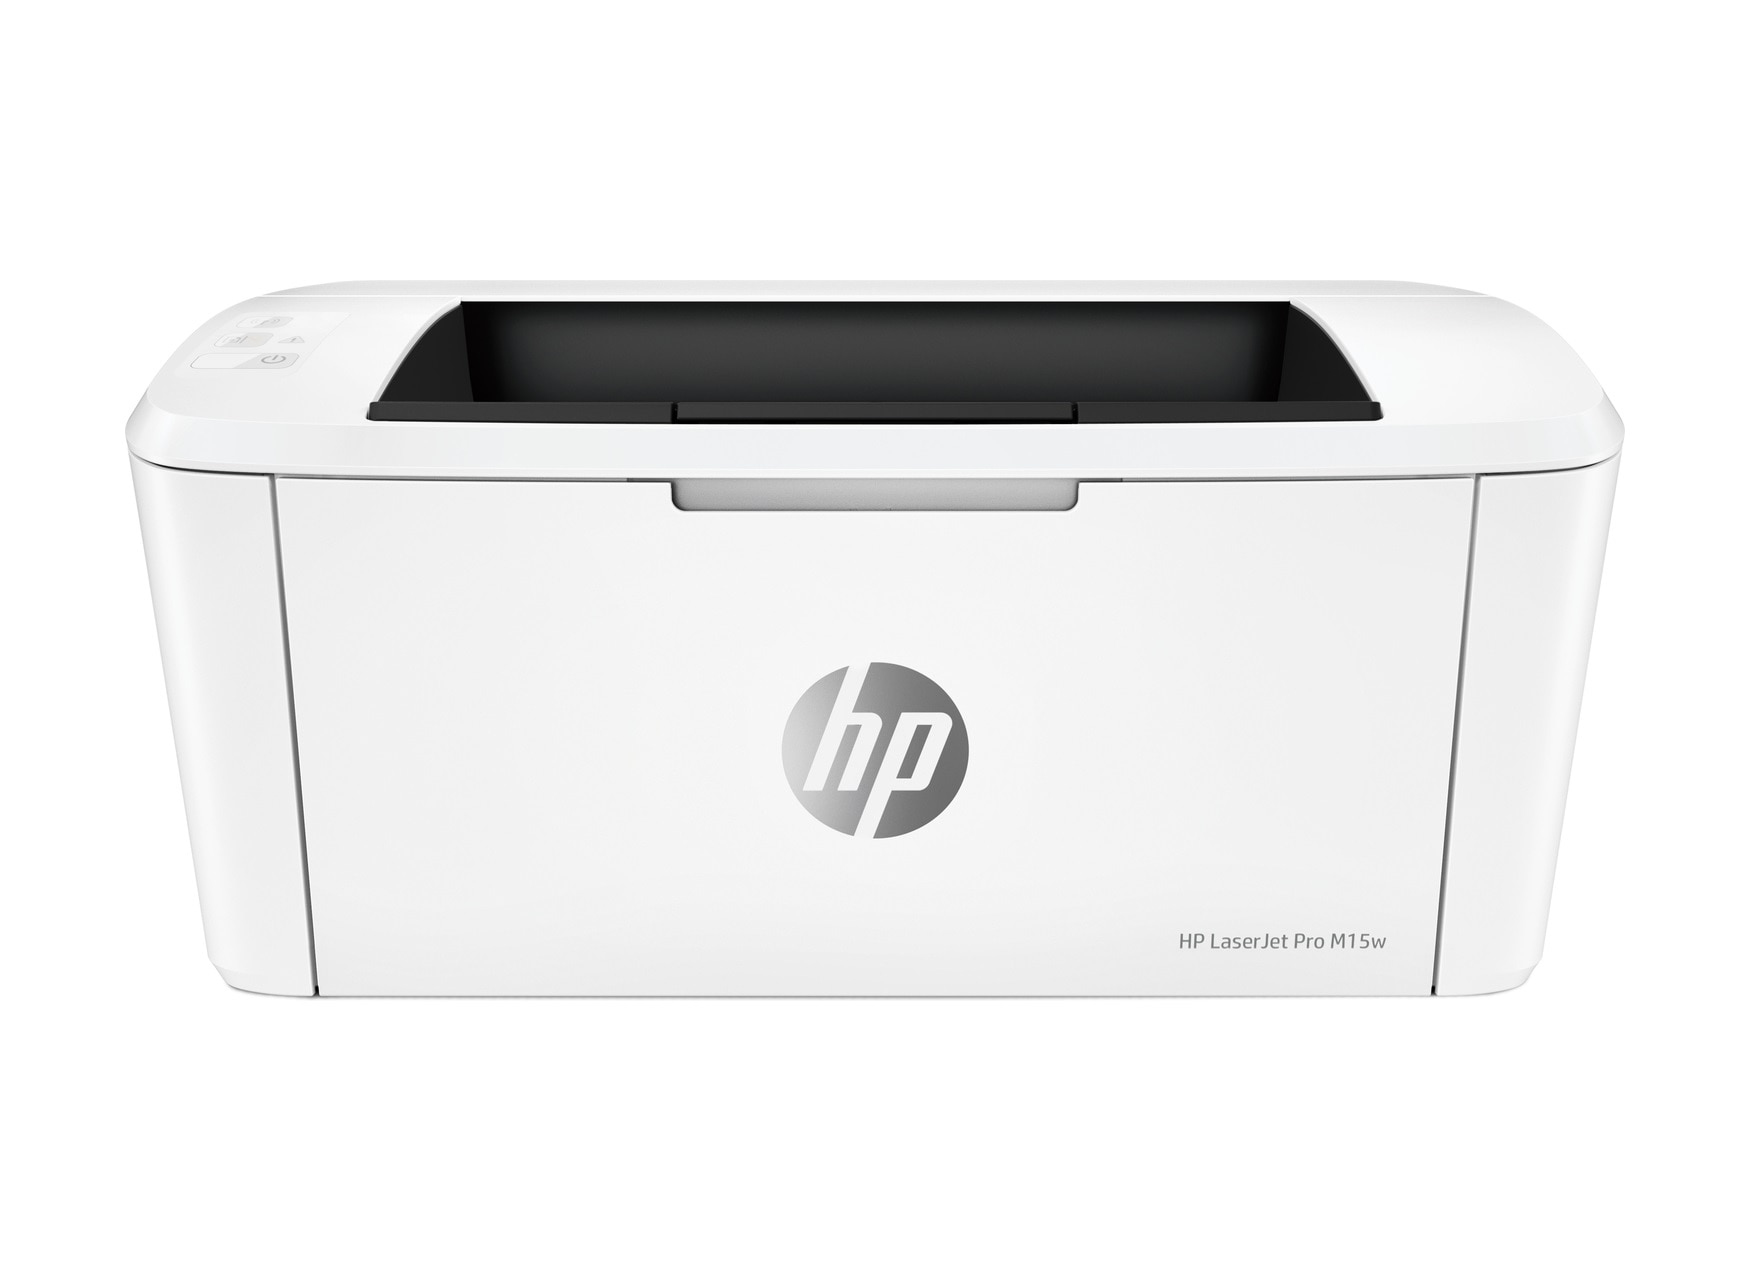 HP LaserJet Pro M15w Black & White Wireless Printer